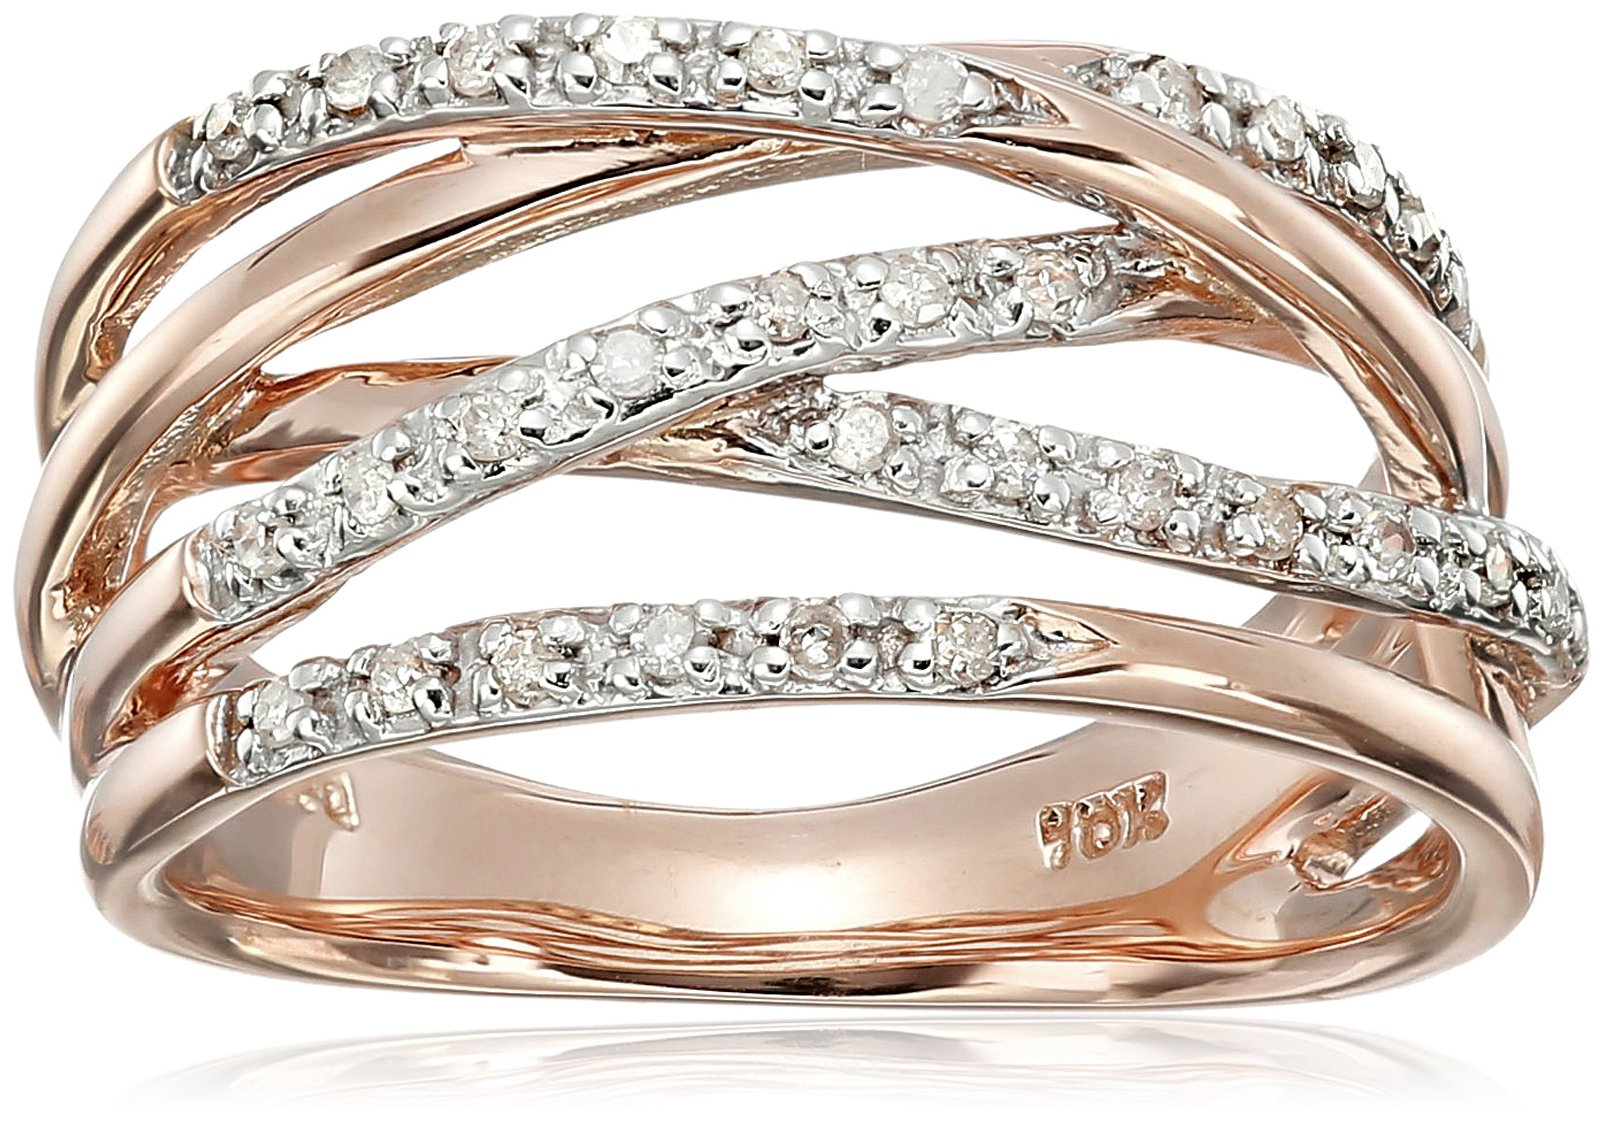 10k Rose Gold Woven Diamond Ring (0.14 cttw, I-J Color, I2-I3 Clarity), Size 7 by Amazon Collection